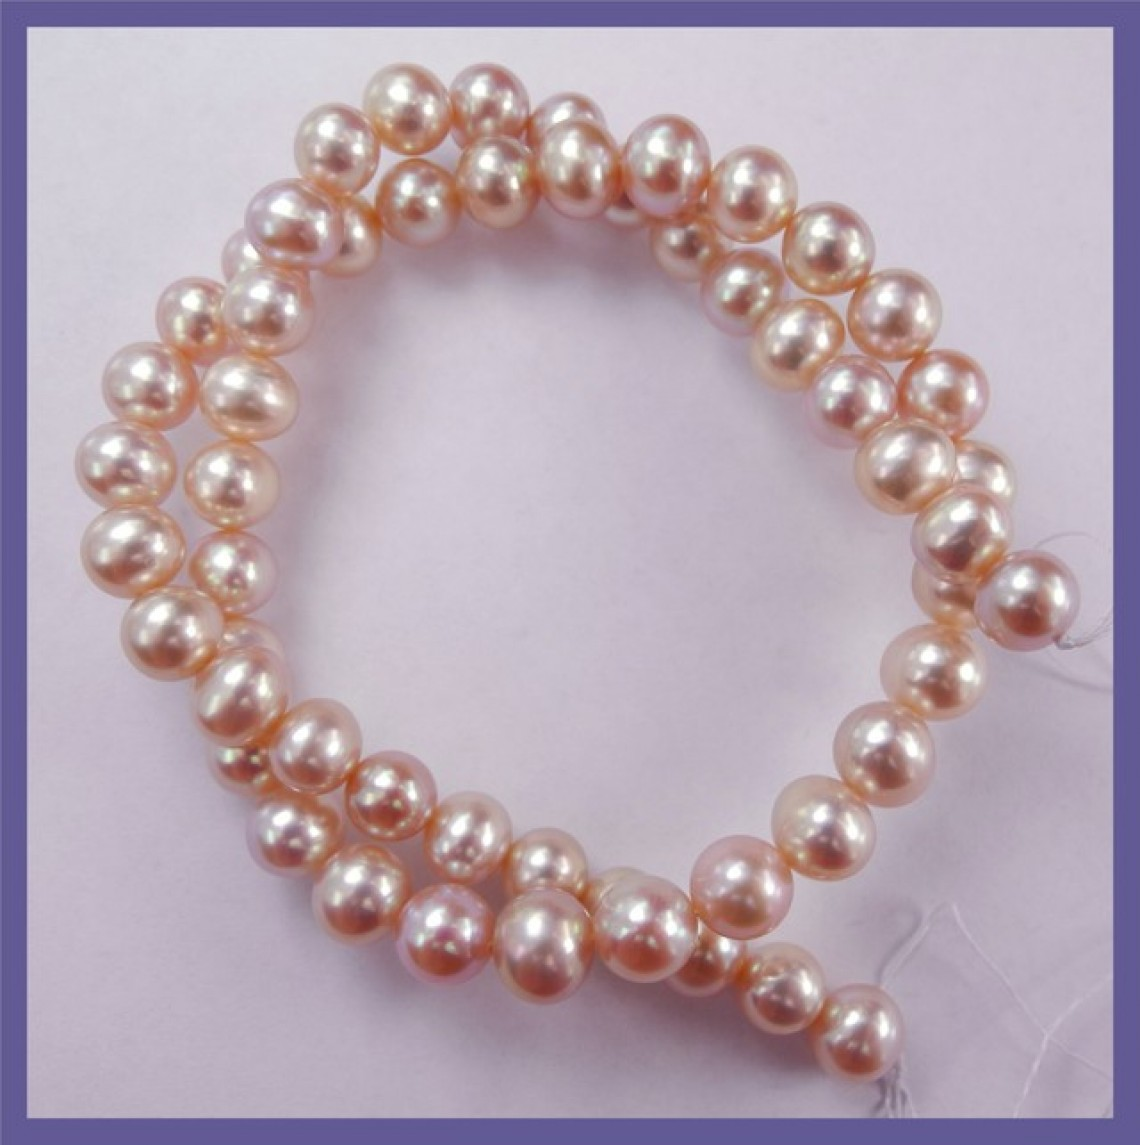 types of pearl - freshwater pearls